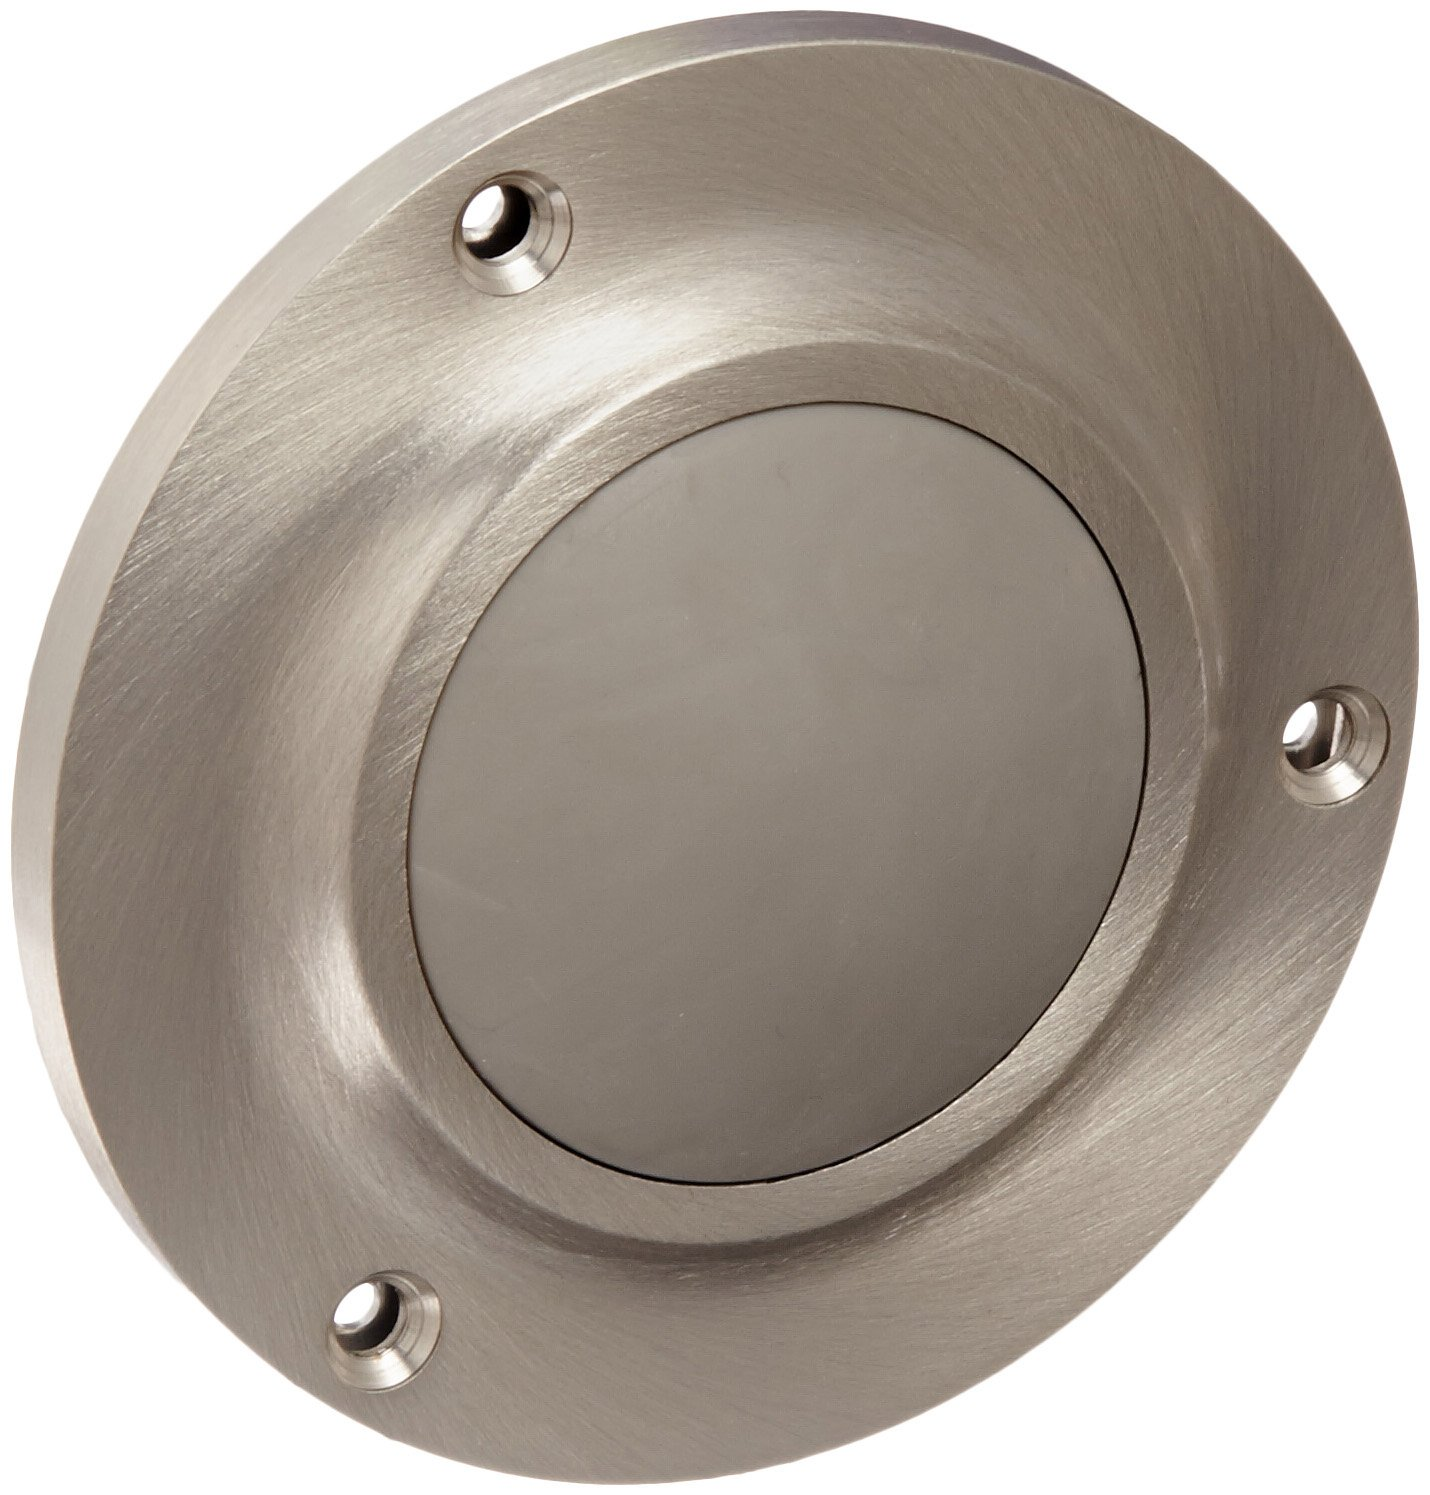 Rockwood 415.15 Brass Convex Solid Cast Wall Stop 4 Diameter 8-32 x 2 RH MS Fastener with Toggle Bolt Satin Nickel Plated Clear Coated Finish 8-32 x 2 RH MS Fastener with Toggle Bolt 4 Diameter Rockwood Manufacturing Company